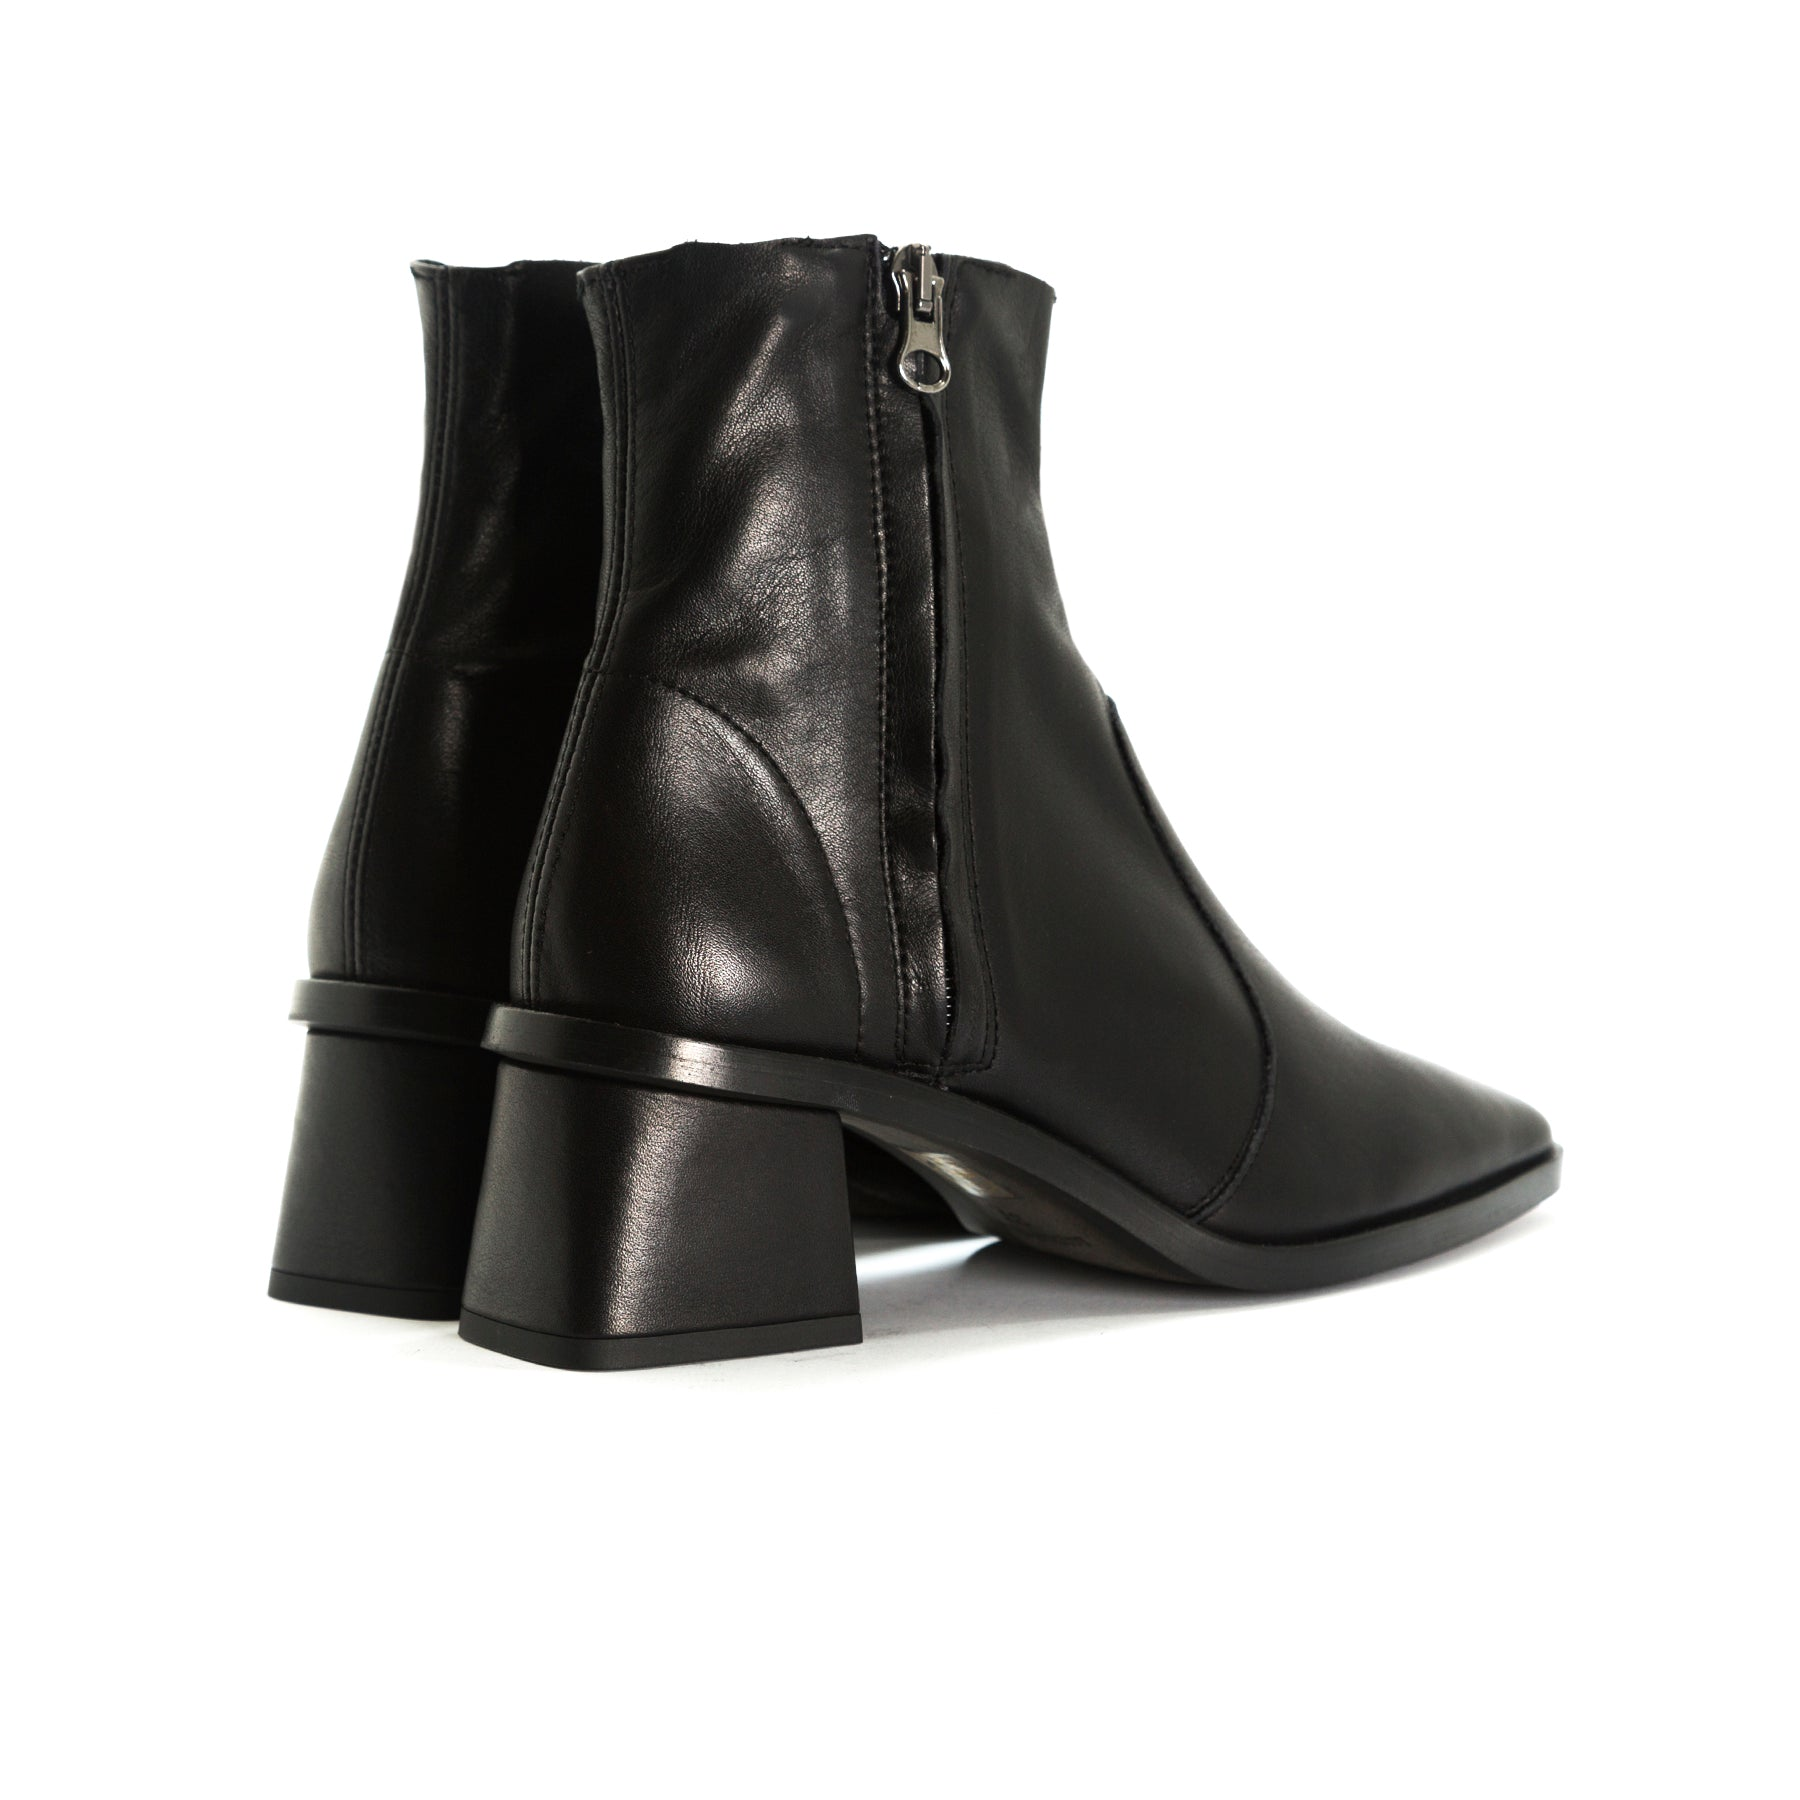 Bristol Black Leather Ankle Boots